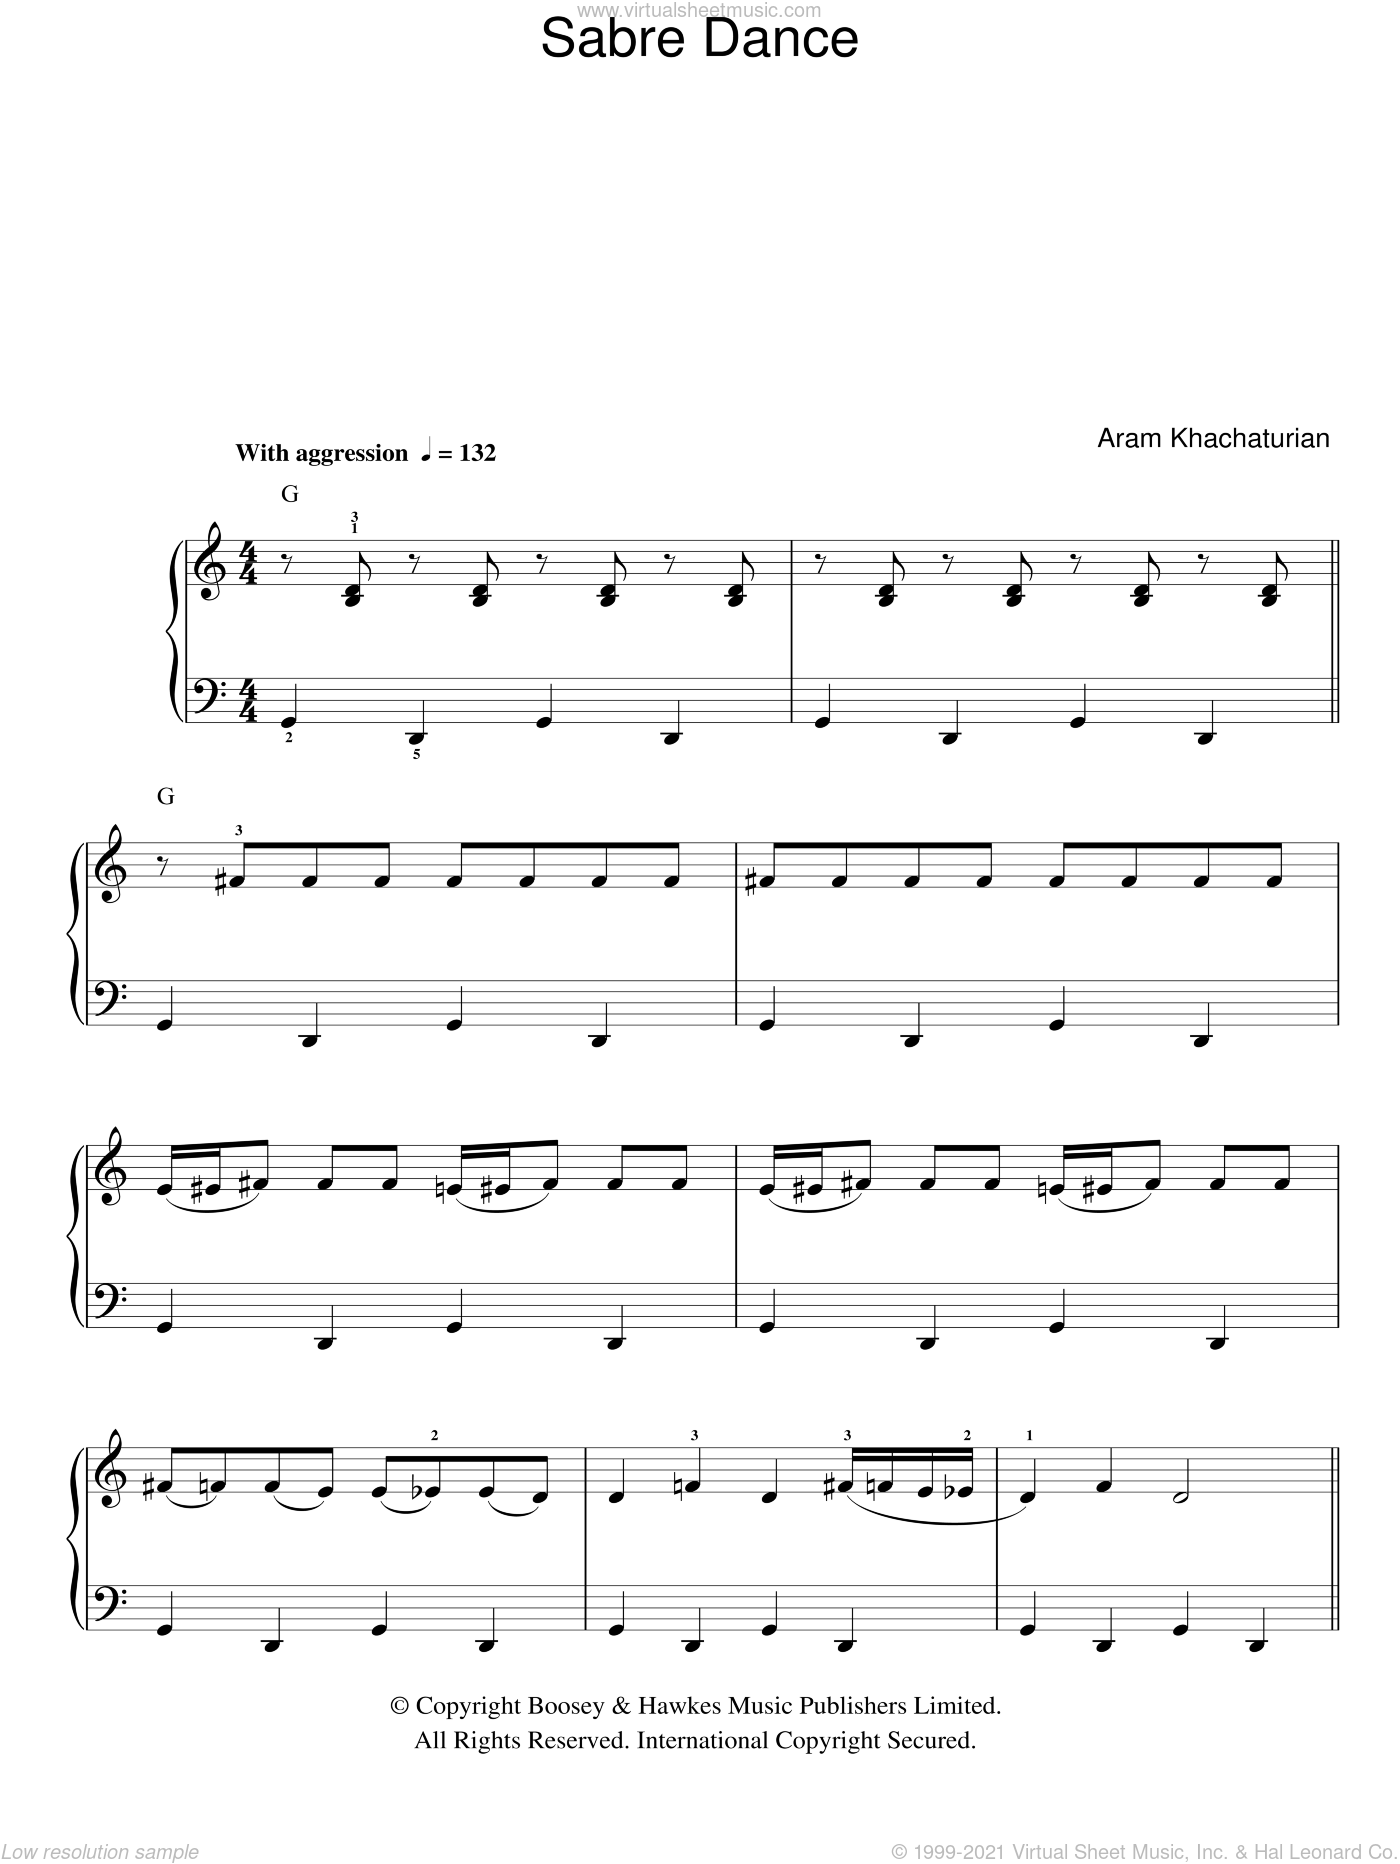 Sabre Dance sheet music for piano solo by Aram Khachaturian. Score Image Preview.